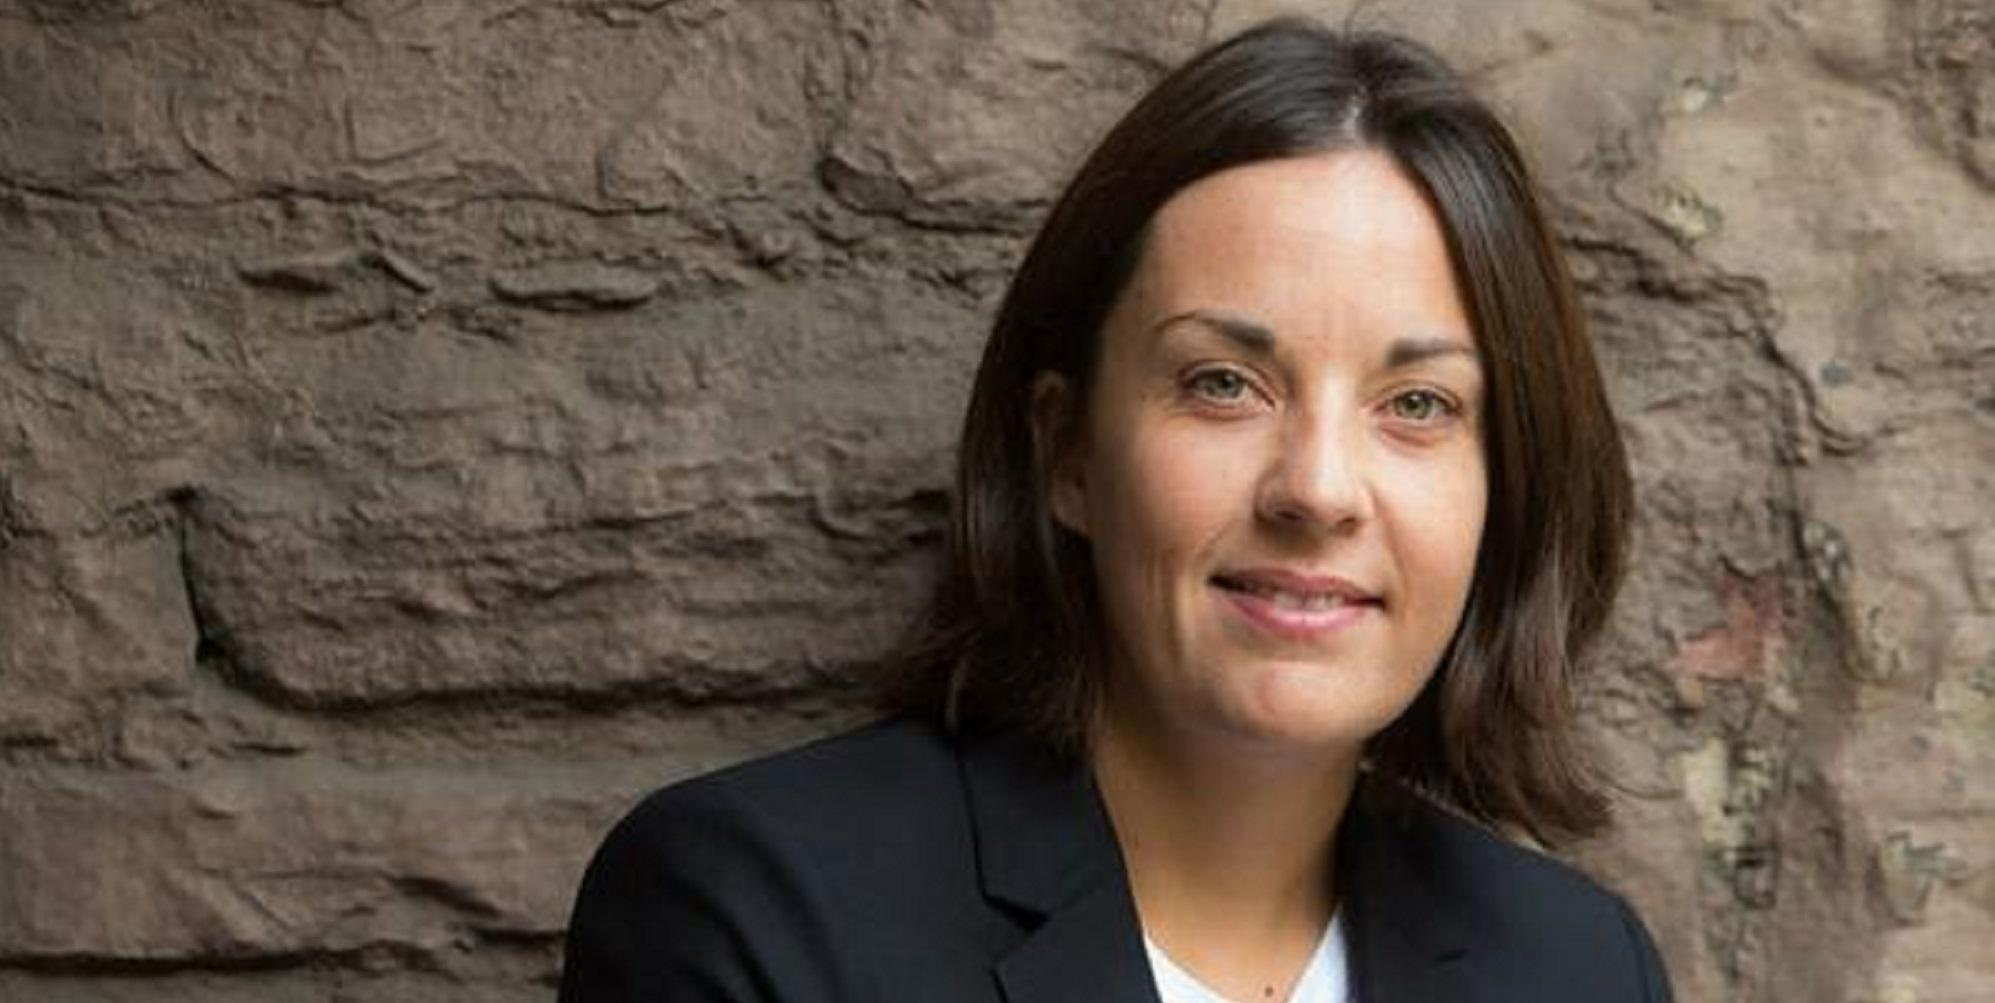 Come On Kezia: Put Your Own House In Order First - Third Force News